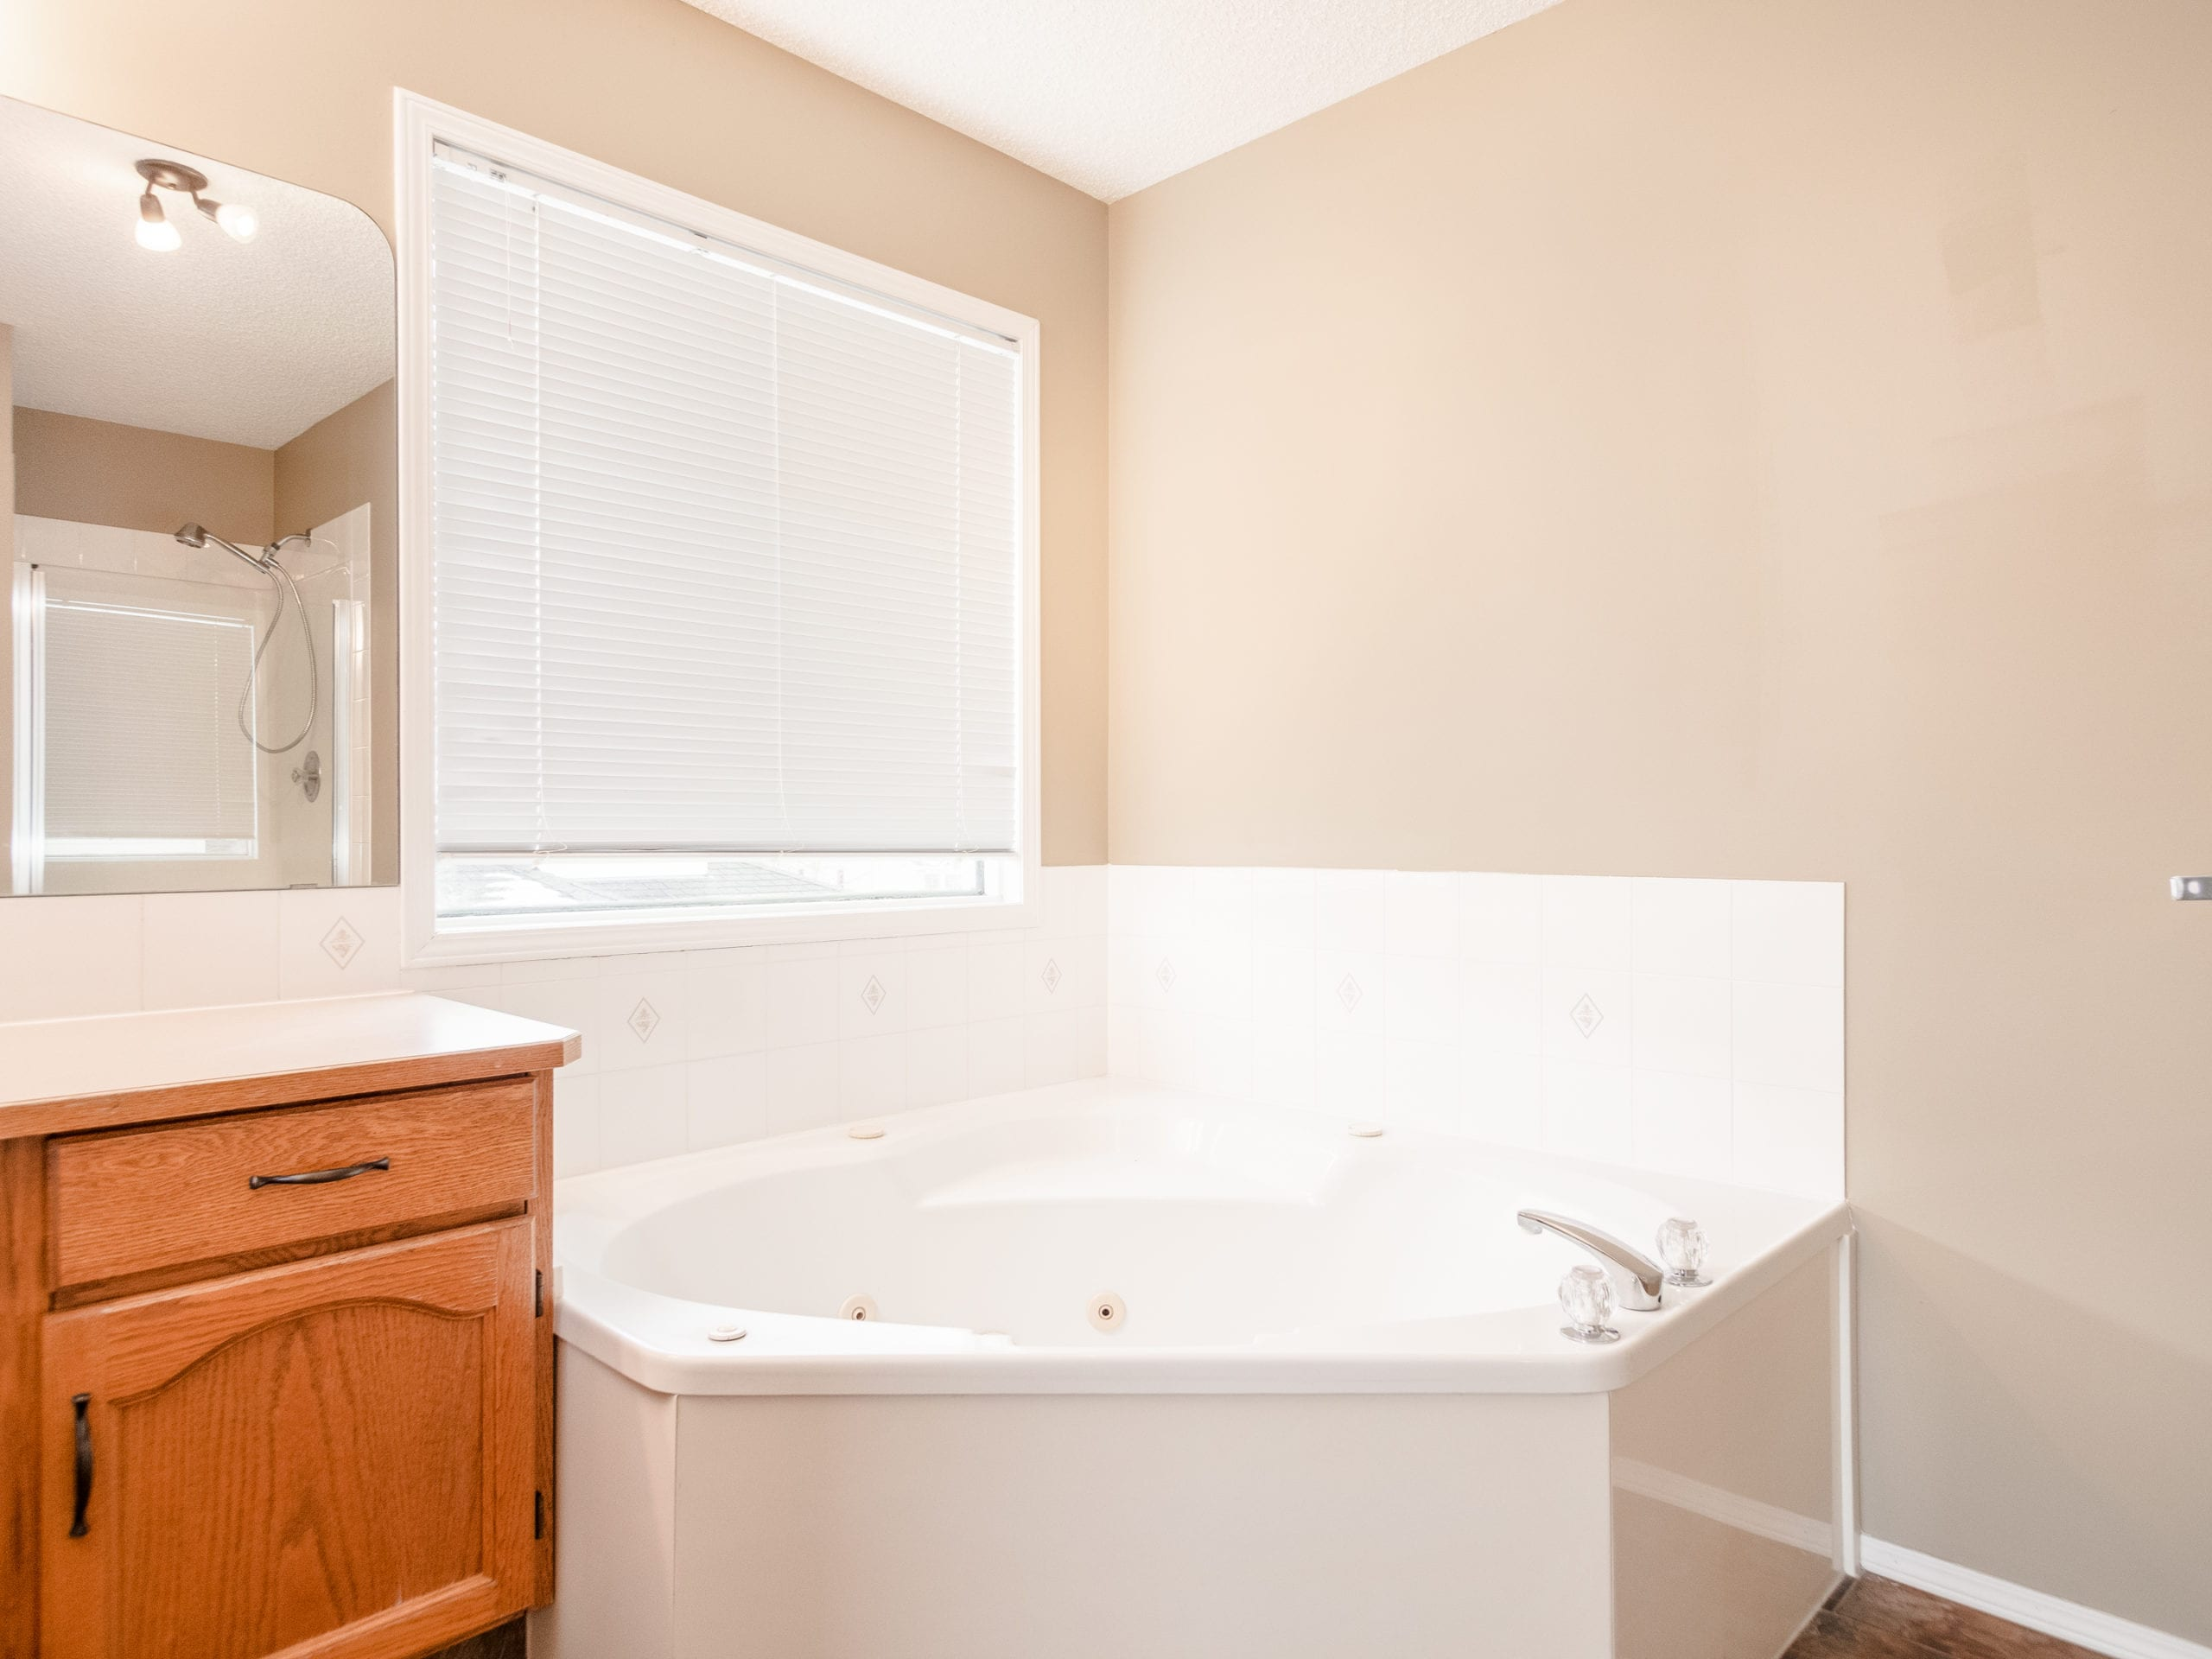 Hello Gorgeous - 143 Woodside Road NW, Airdrie AB. - Tara Molina Real Estate (28 of 54)